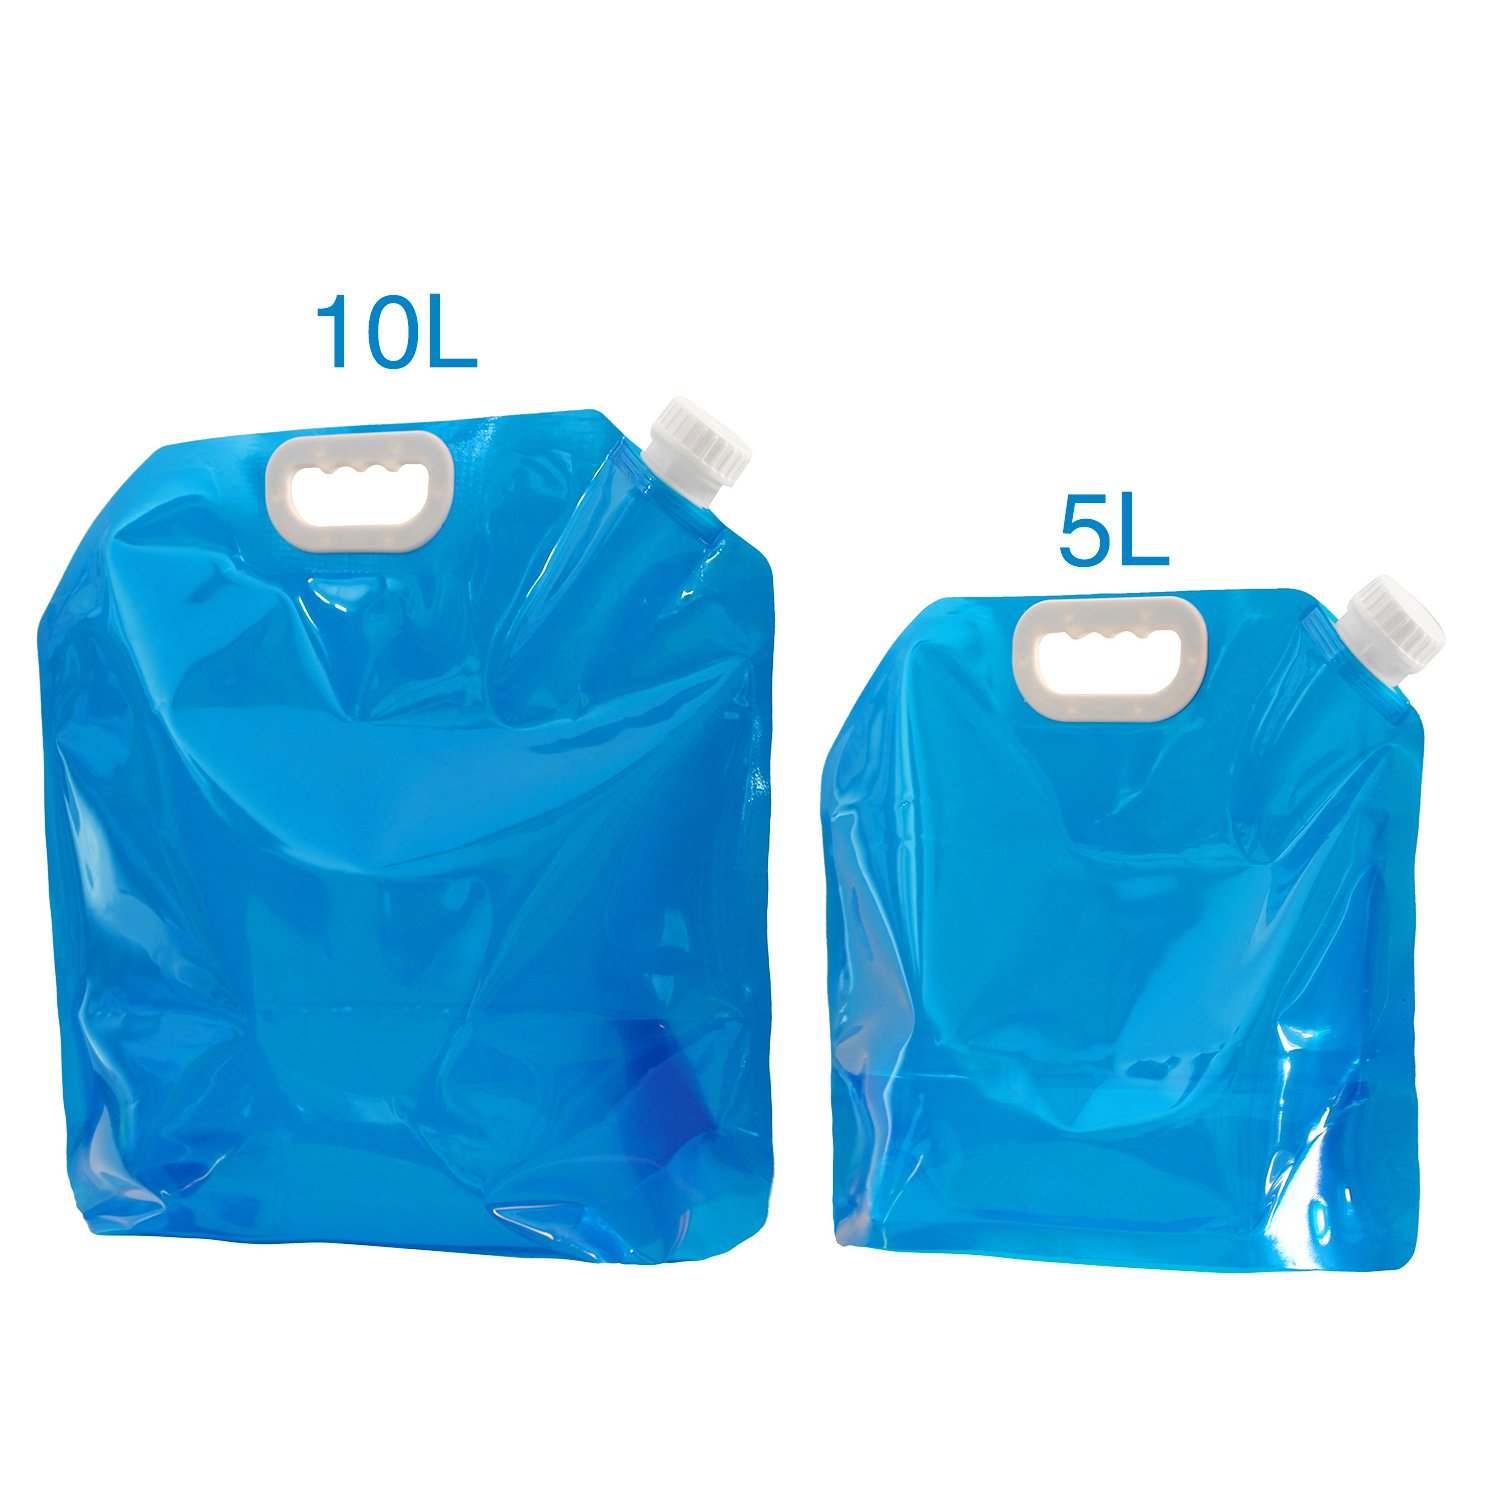 VABNEER 2 x Pack Water Carrier Folding Drinking Water Container Portable Foldable Water Tank Plastic Water Carrier BPA Free Non-toxic Odorless Water Storage Bag For Camping Hiking Picnic BBQ